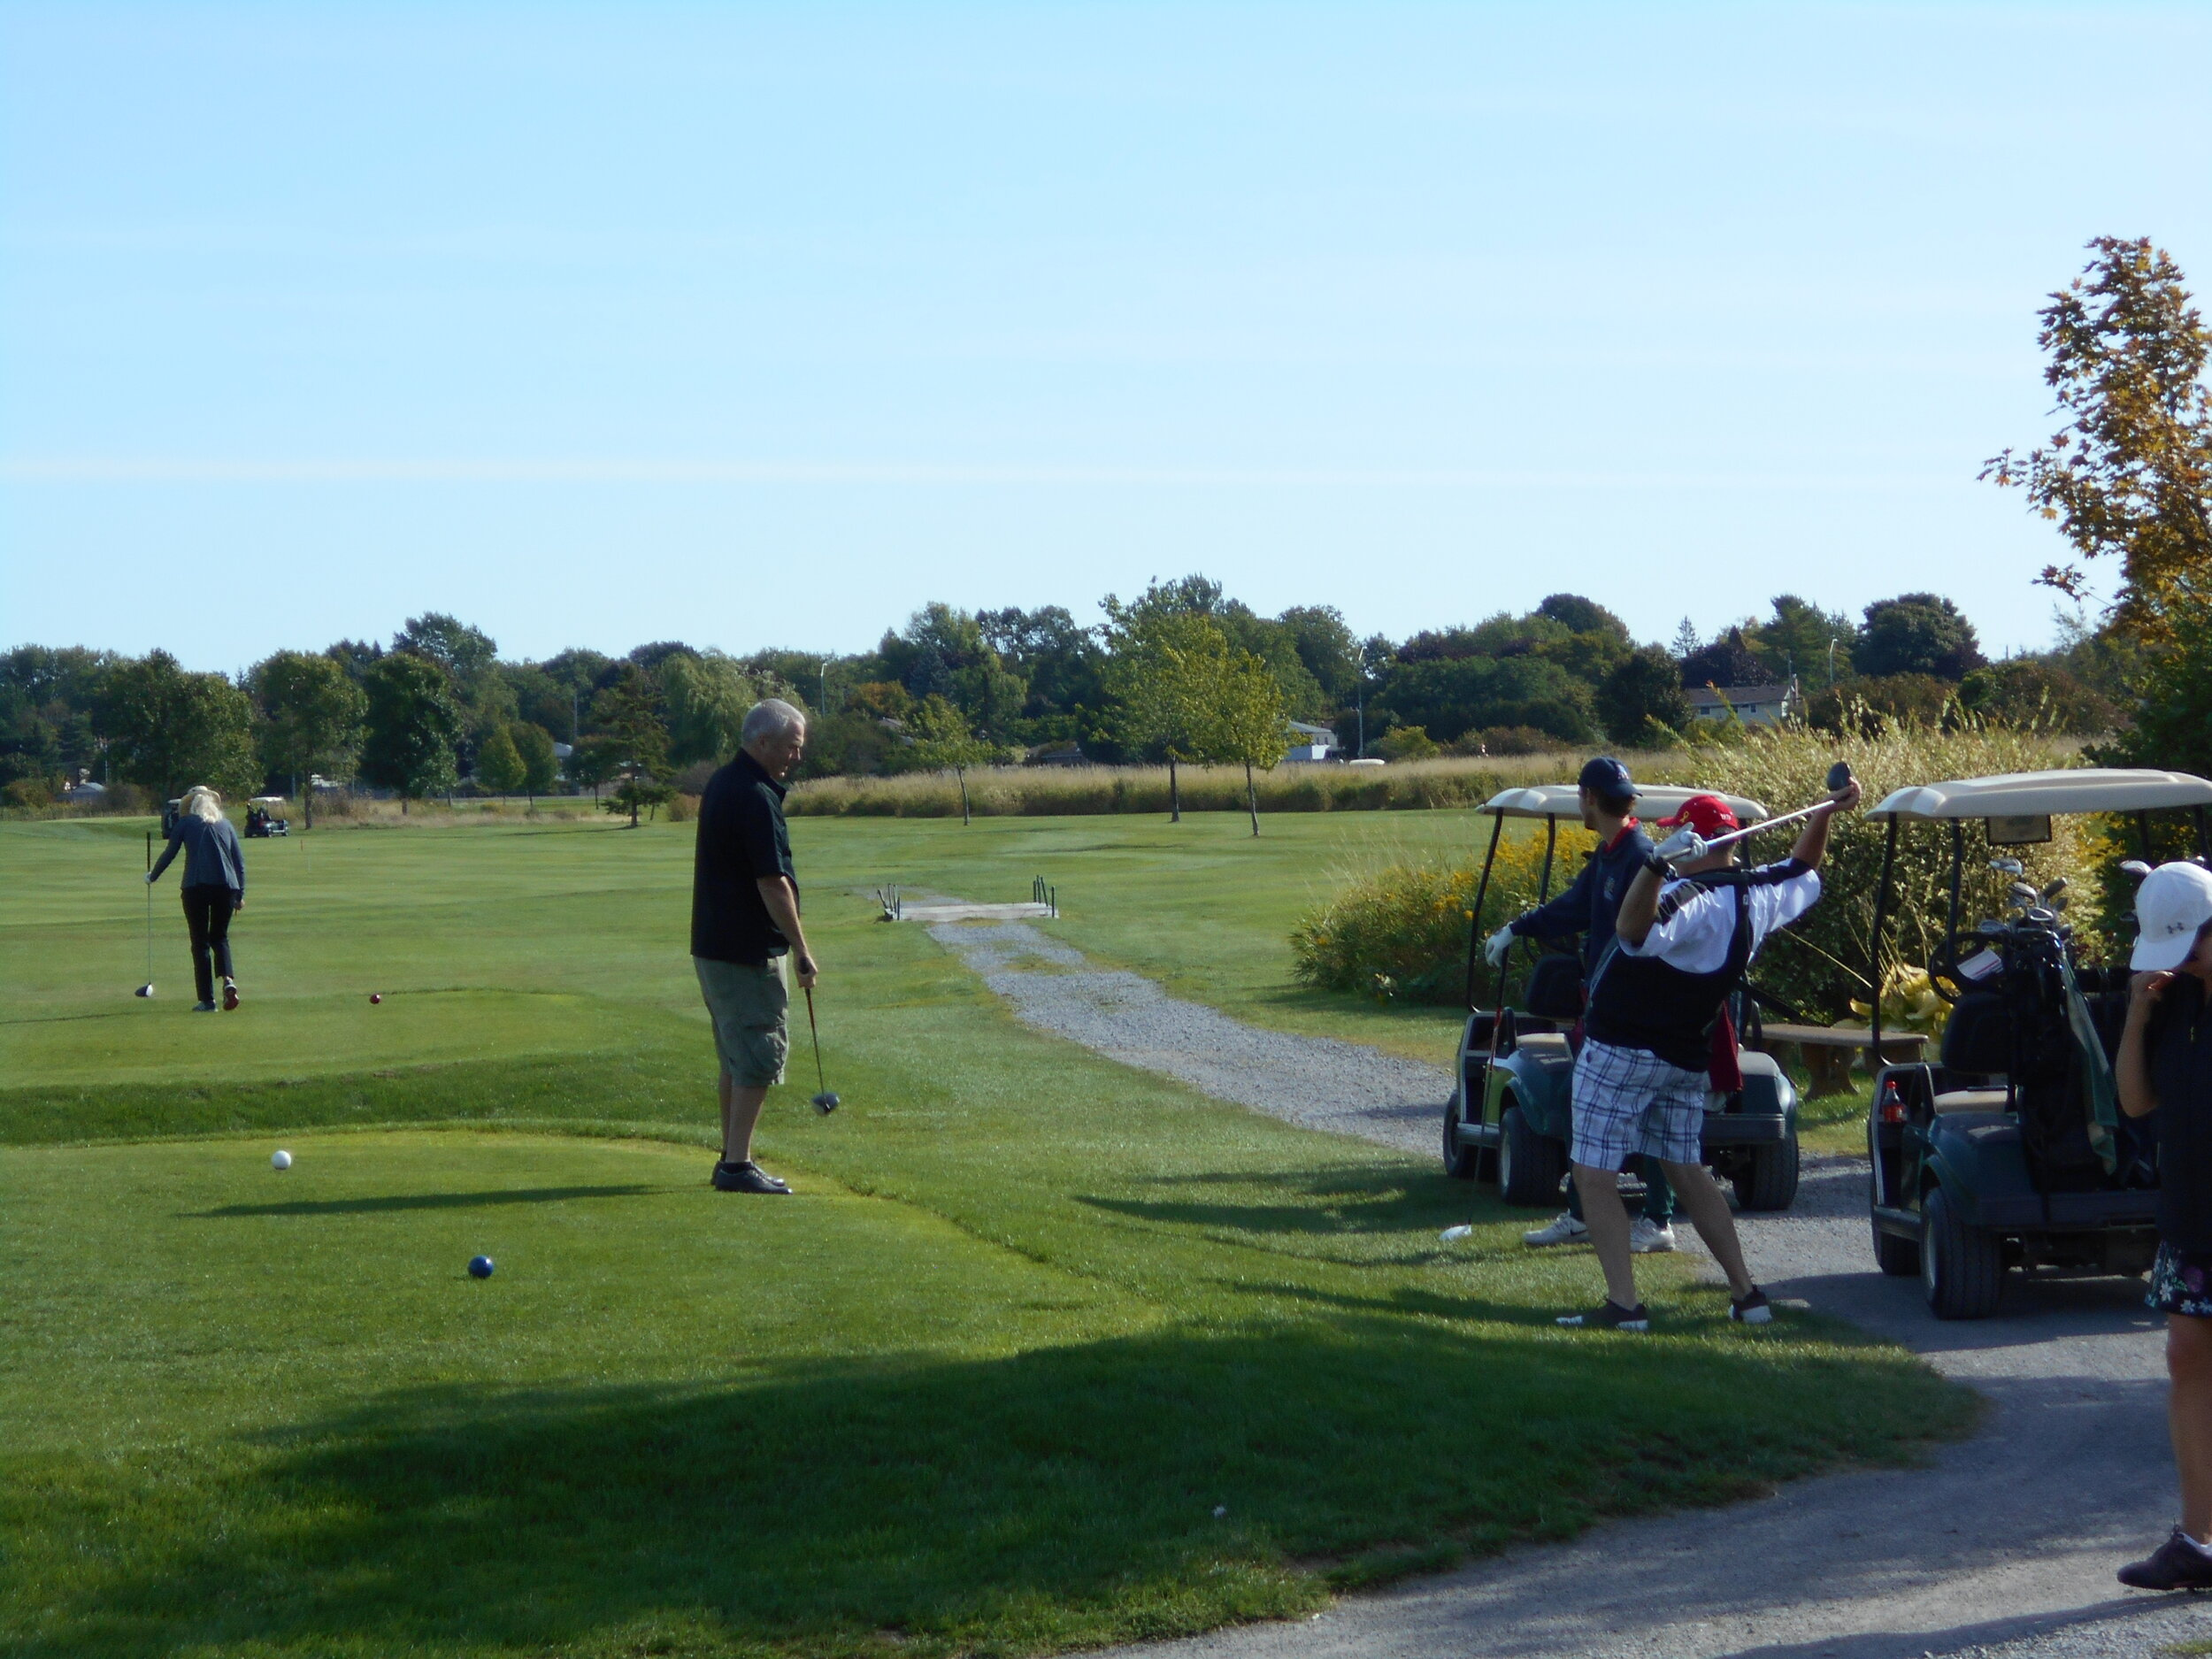 """manja going to retrieve farley's tee shot off the first hole; ray stretching to make sure he can hit his just a wee bit further than dave's 30 yarder. riley, my stepson, thinking, """"whoa, maybe i am going to have to carry these 60-somethings"""""""